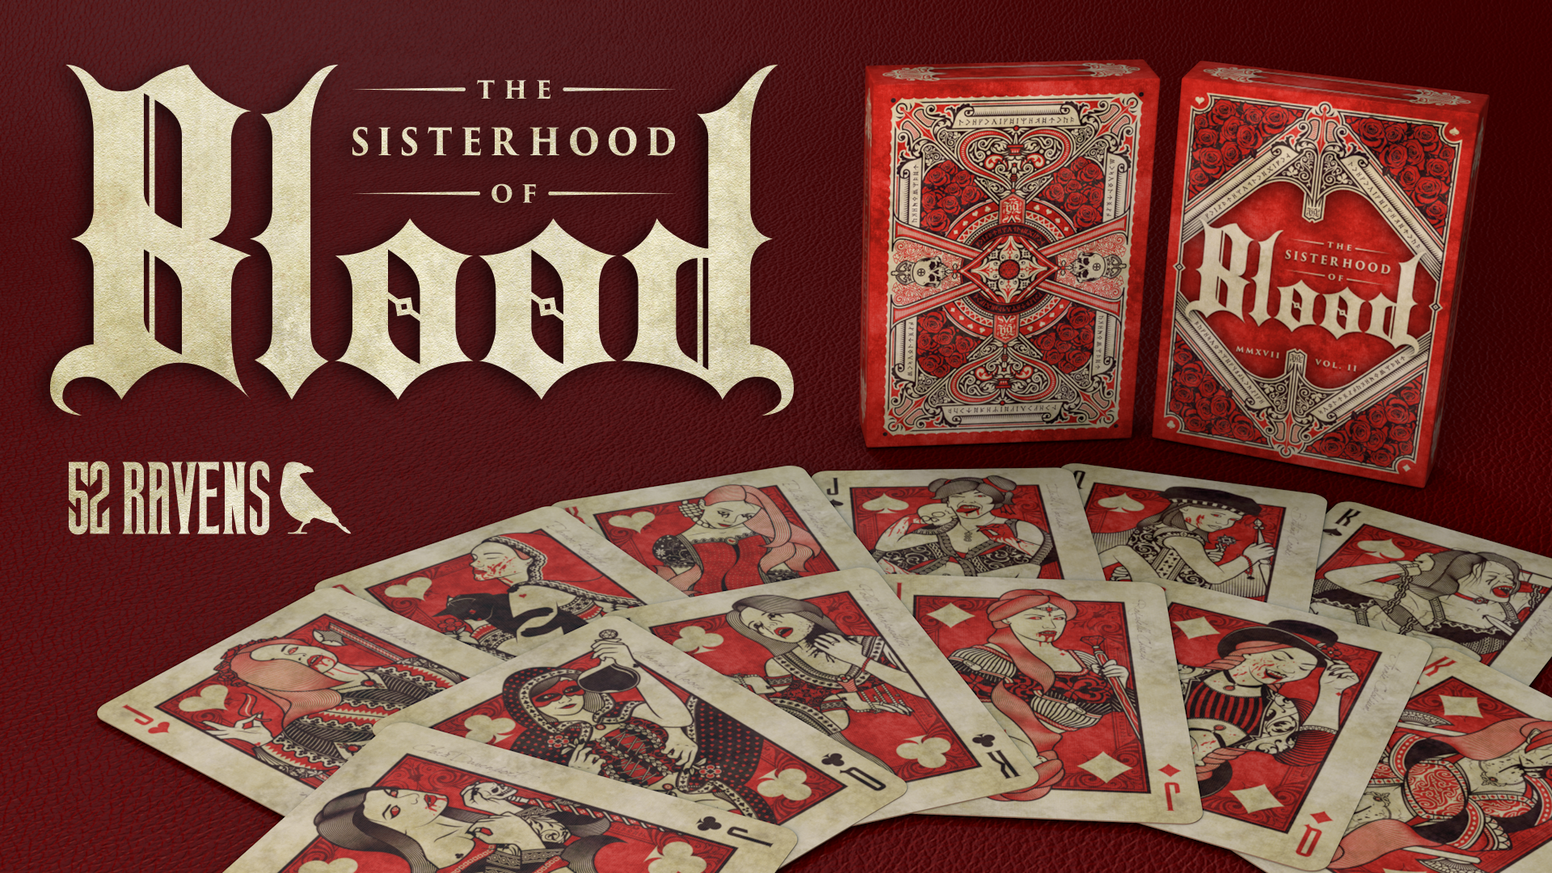 Custom poker-sized vampiric playing cards, with all new members of the sisterhood revealed. Designed by 52Ravens & printed by EPCC